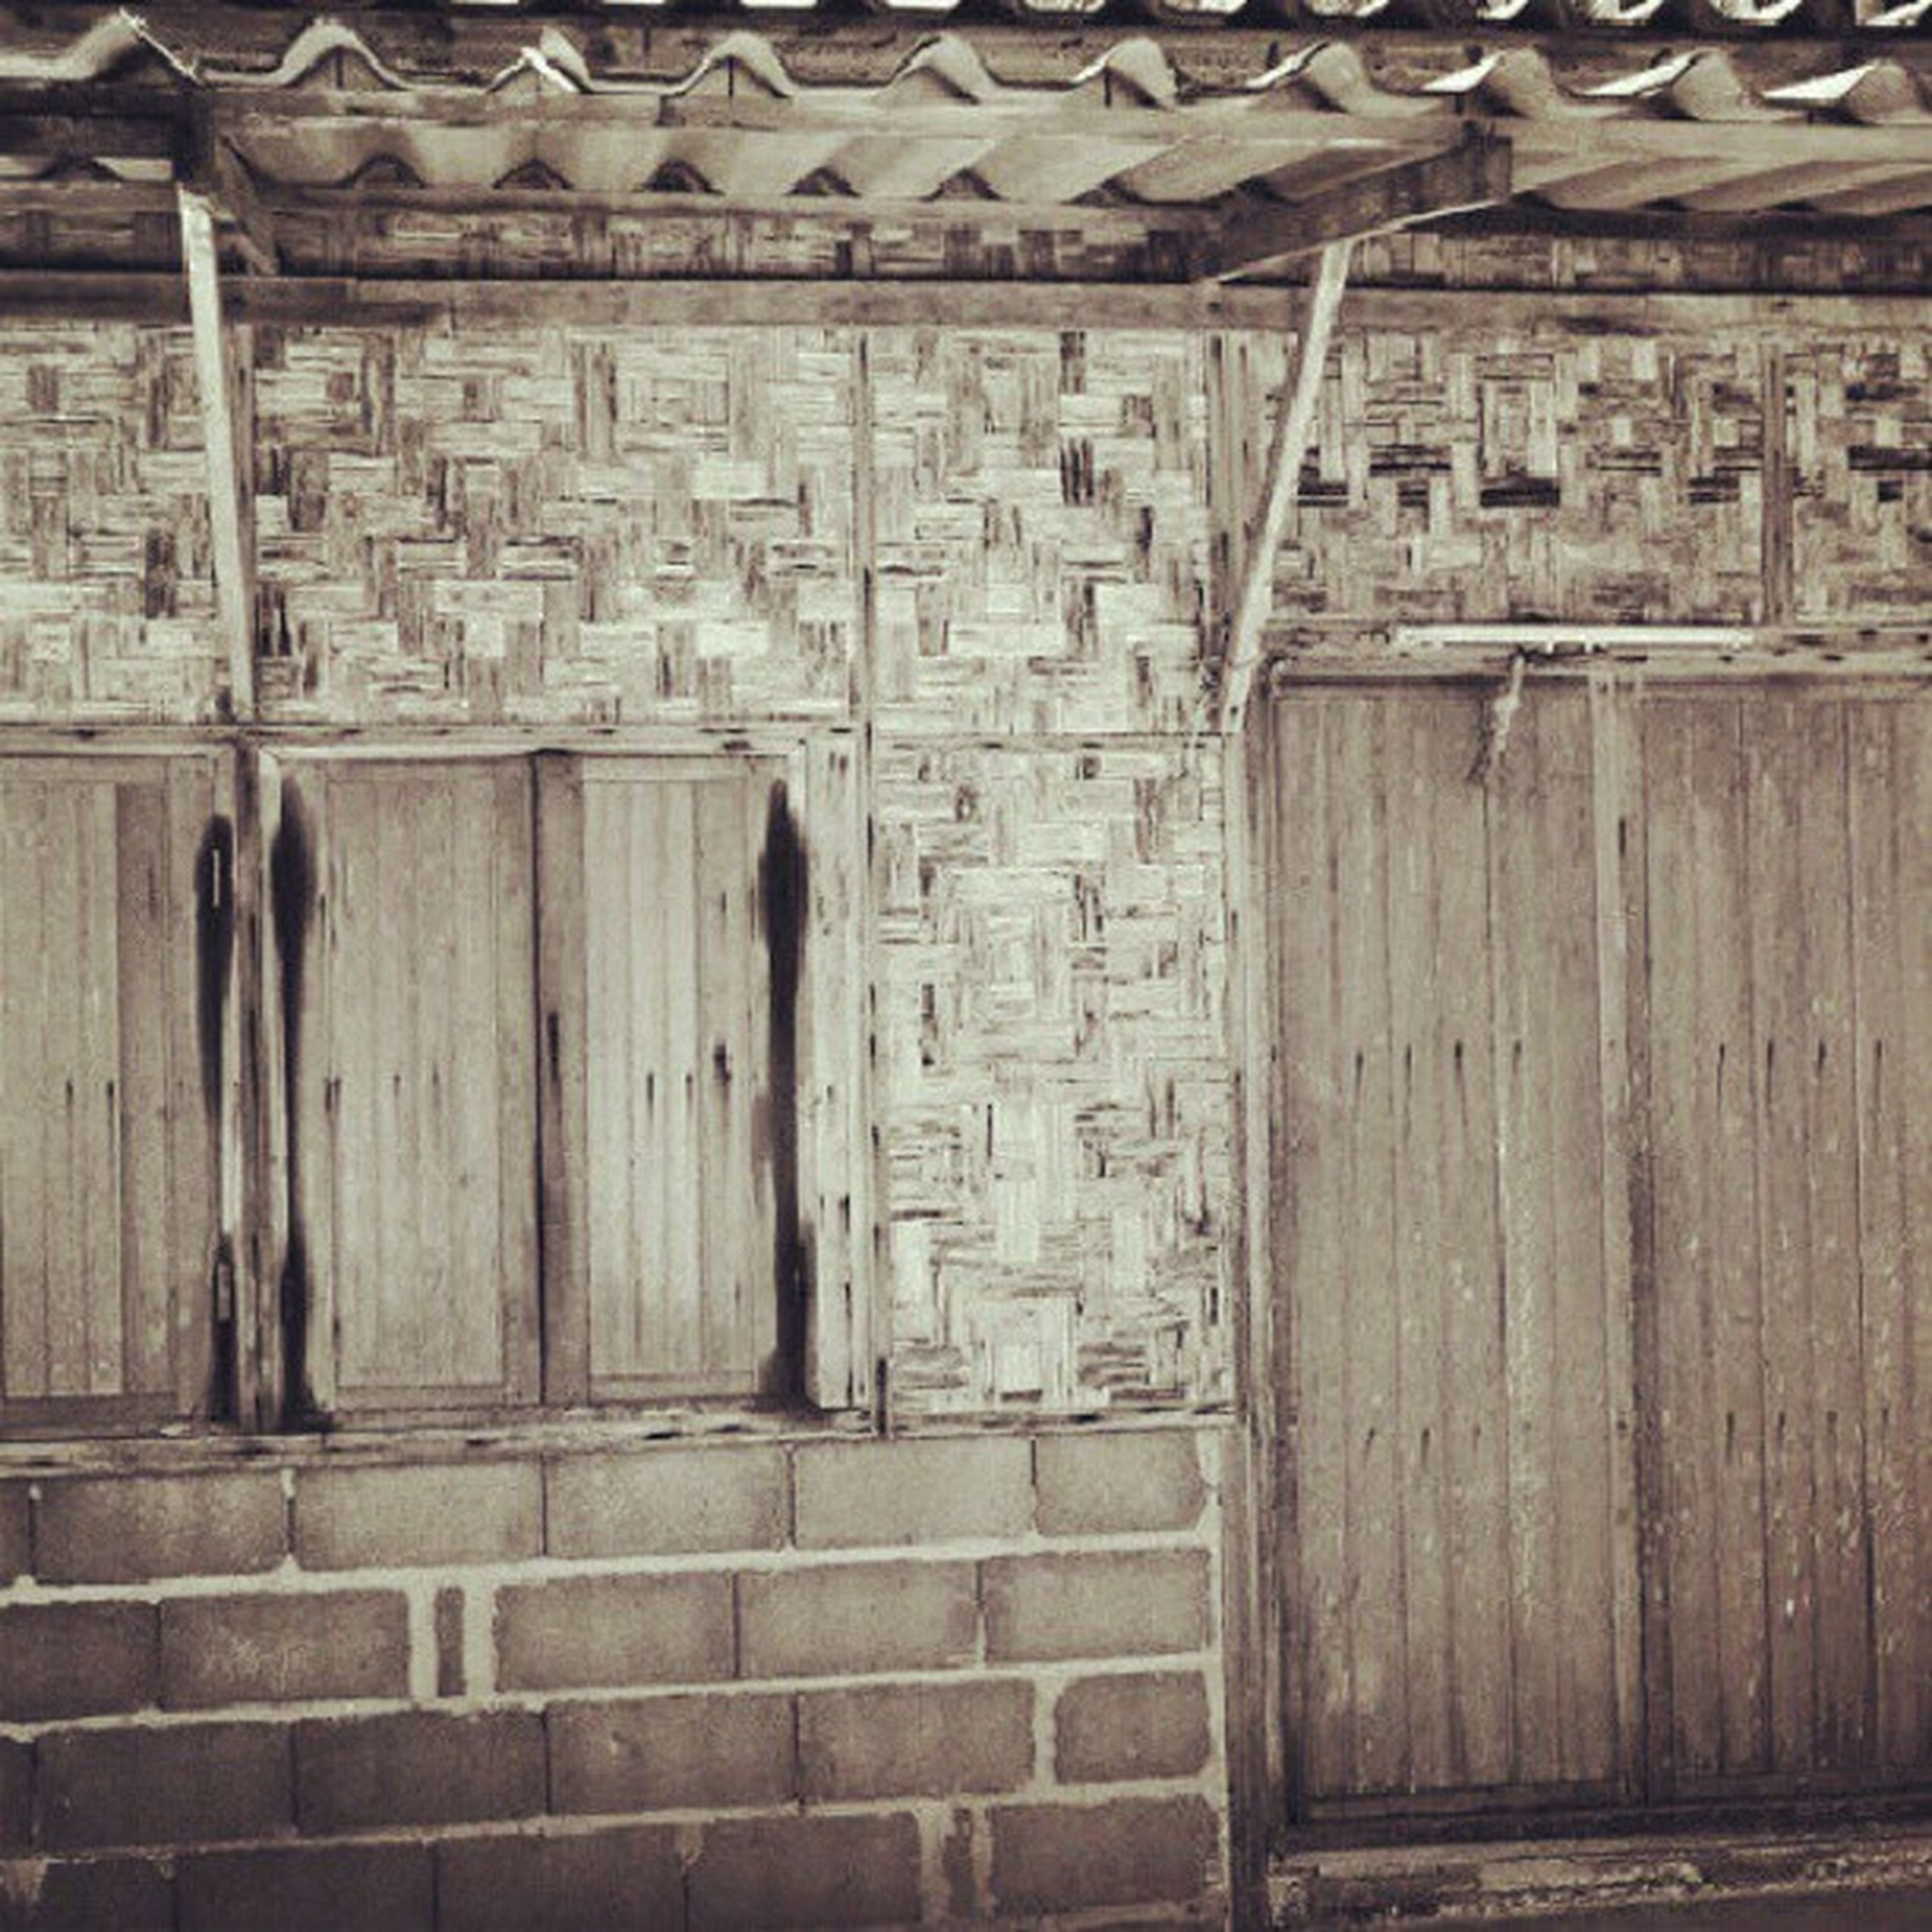 architecture, built structure, building exterior, door, wood - material, house, old, closed, window, entrance, day, outdoors, wall - building feature, wooden, weathered, building, no people, protection, safety, facade